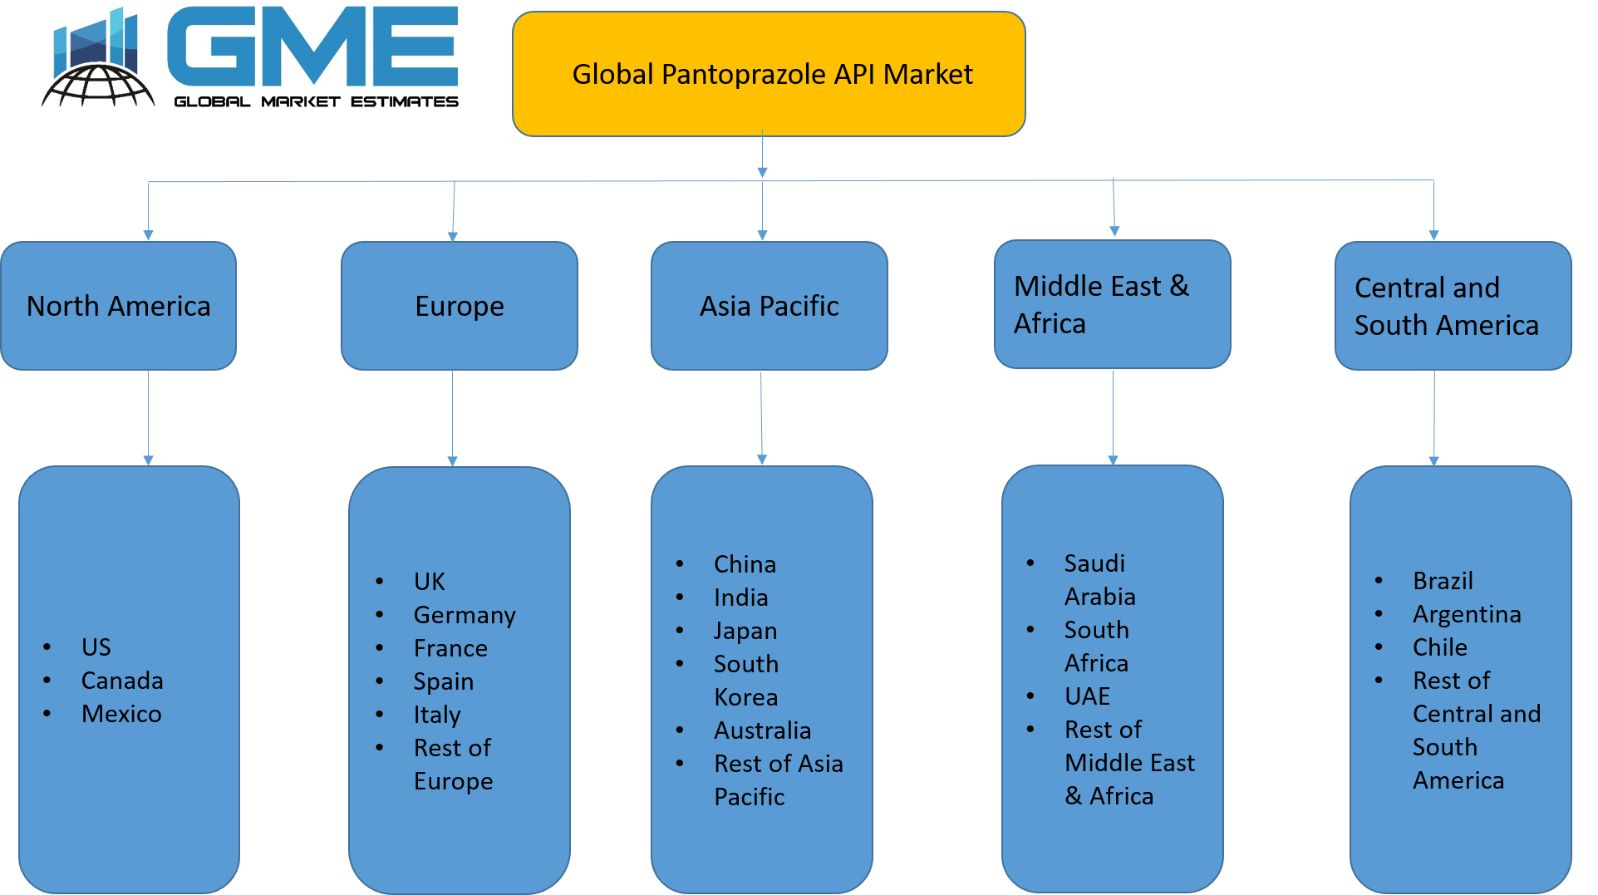 Global Pantoprazole API Market